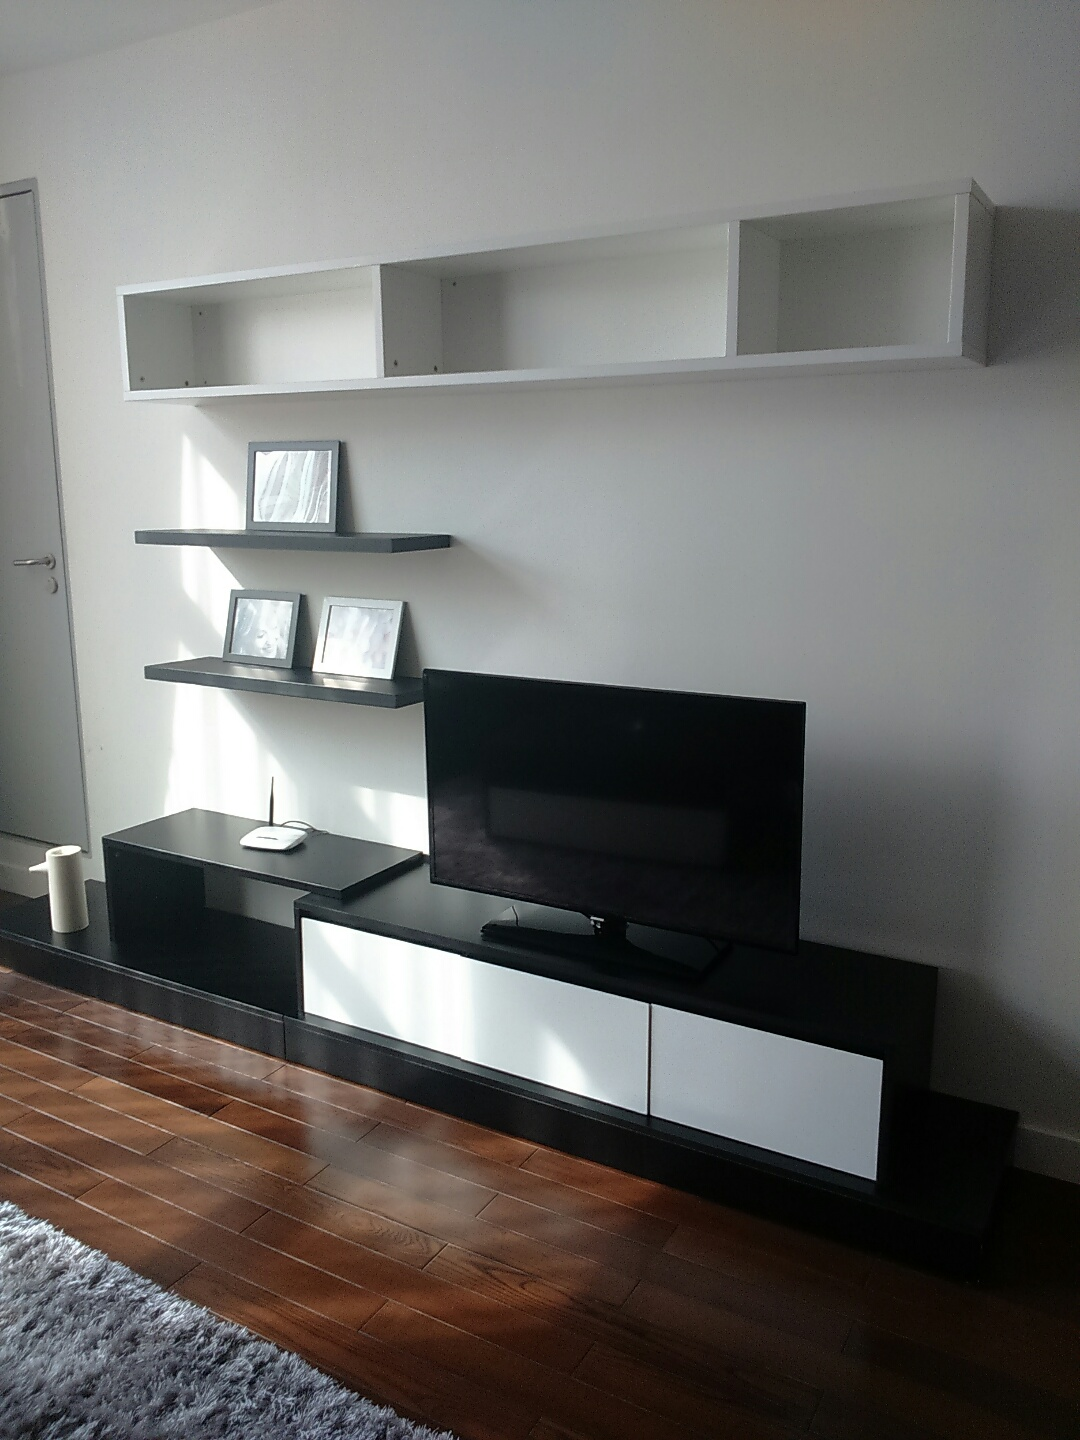 Beautiful apartment for rent in Nui Truc Street, Ba Dinh District, Hanoi.